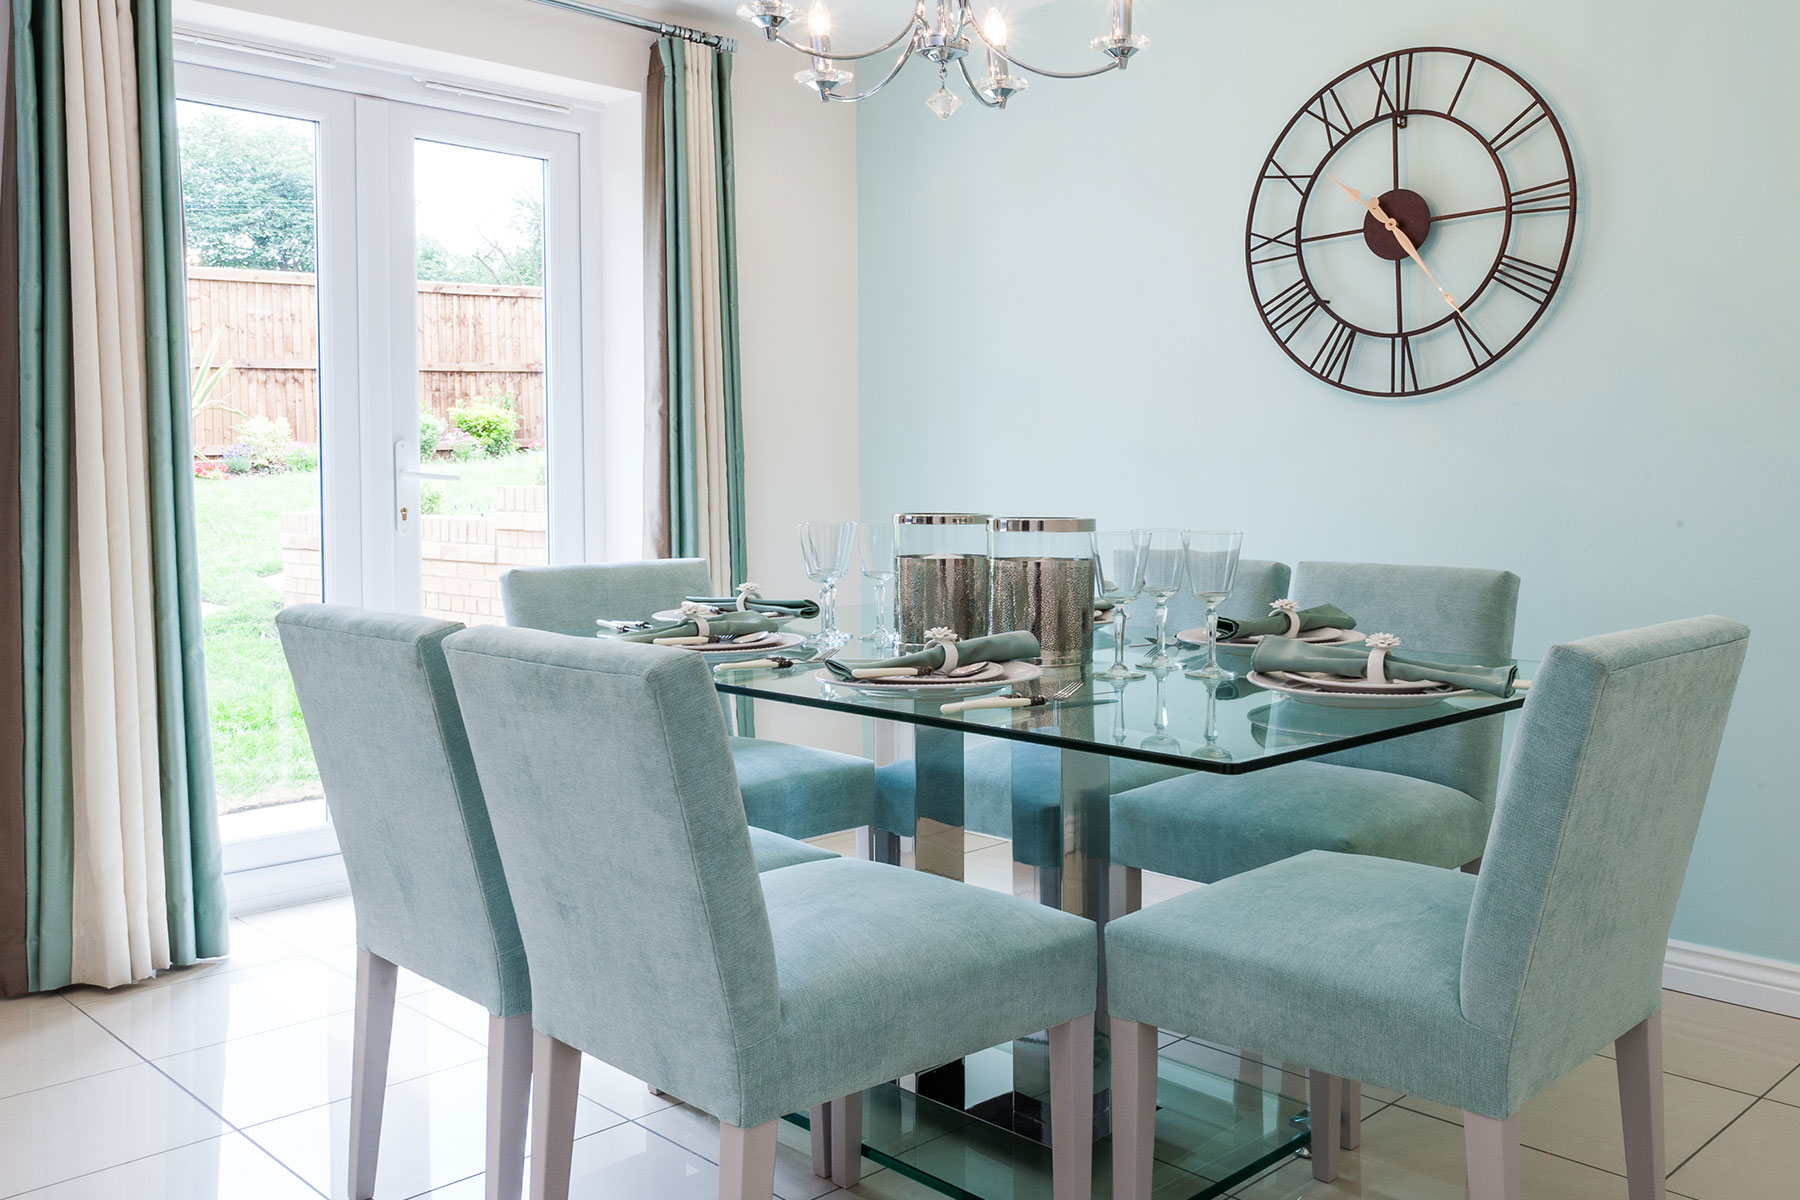 Typical Taylor Wimpey dining area